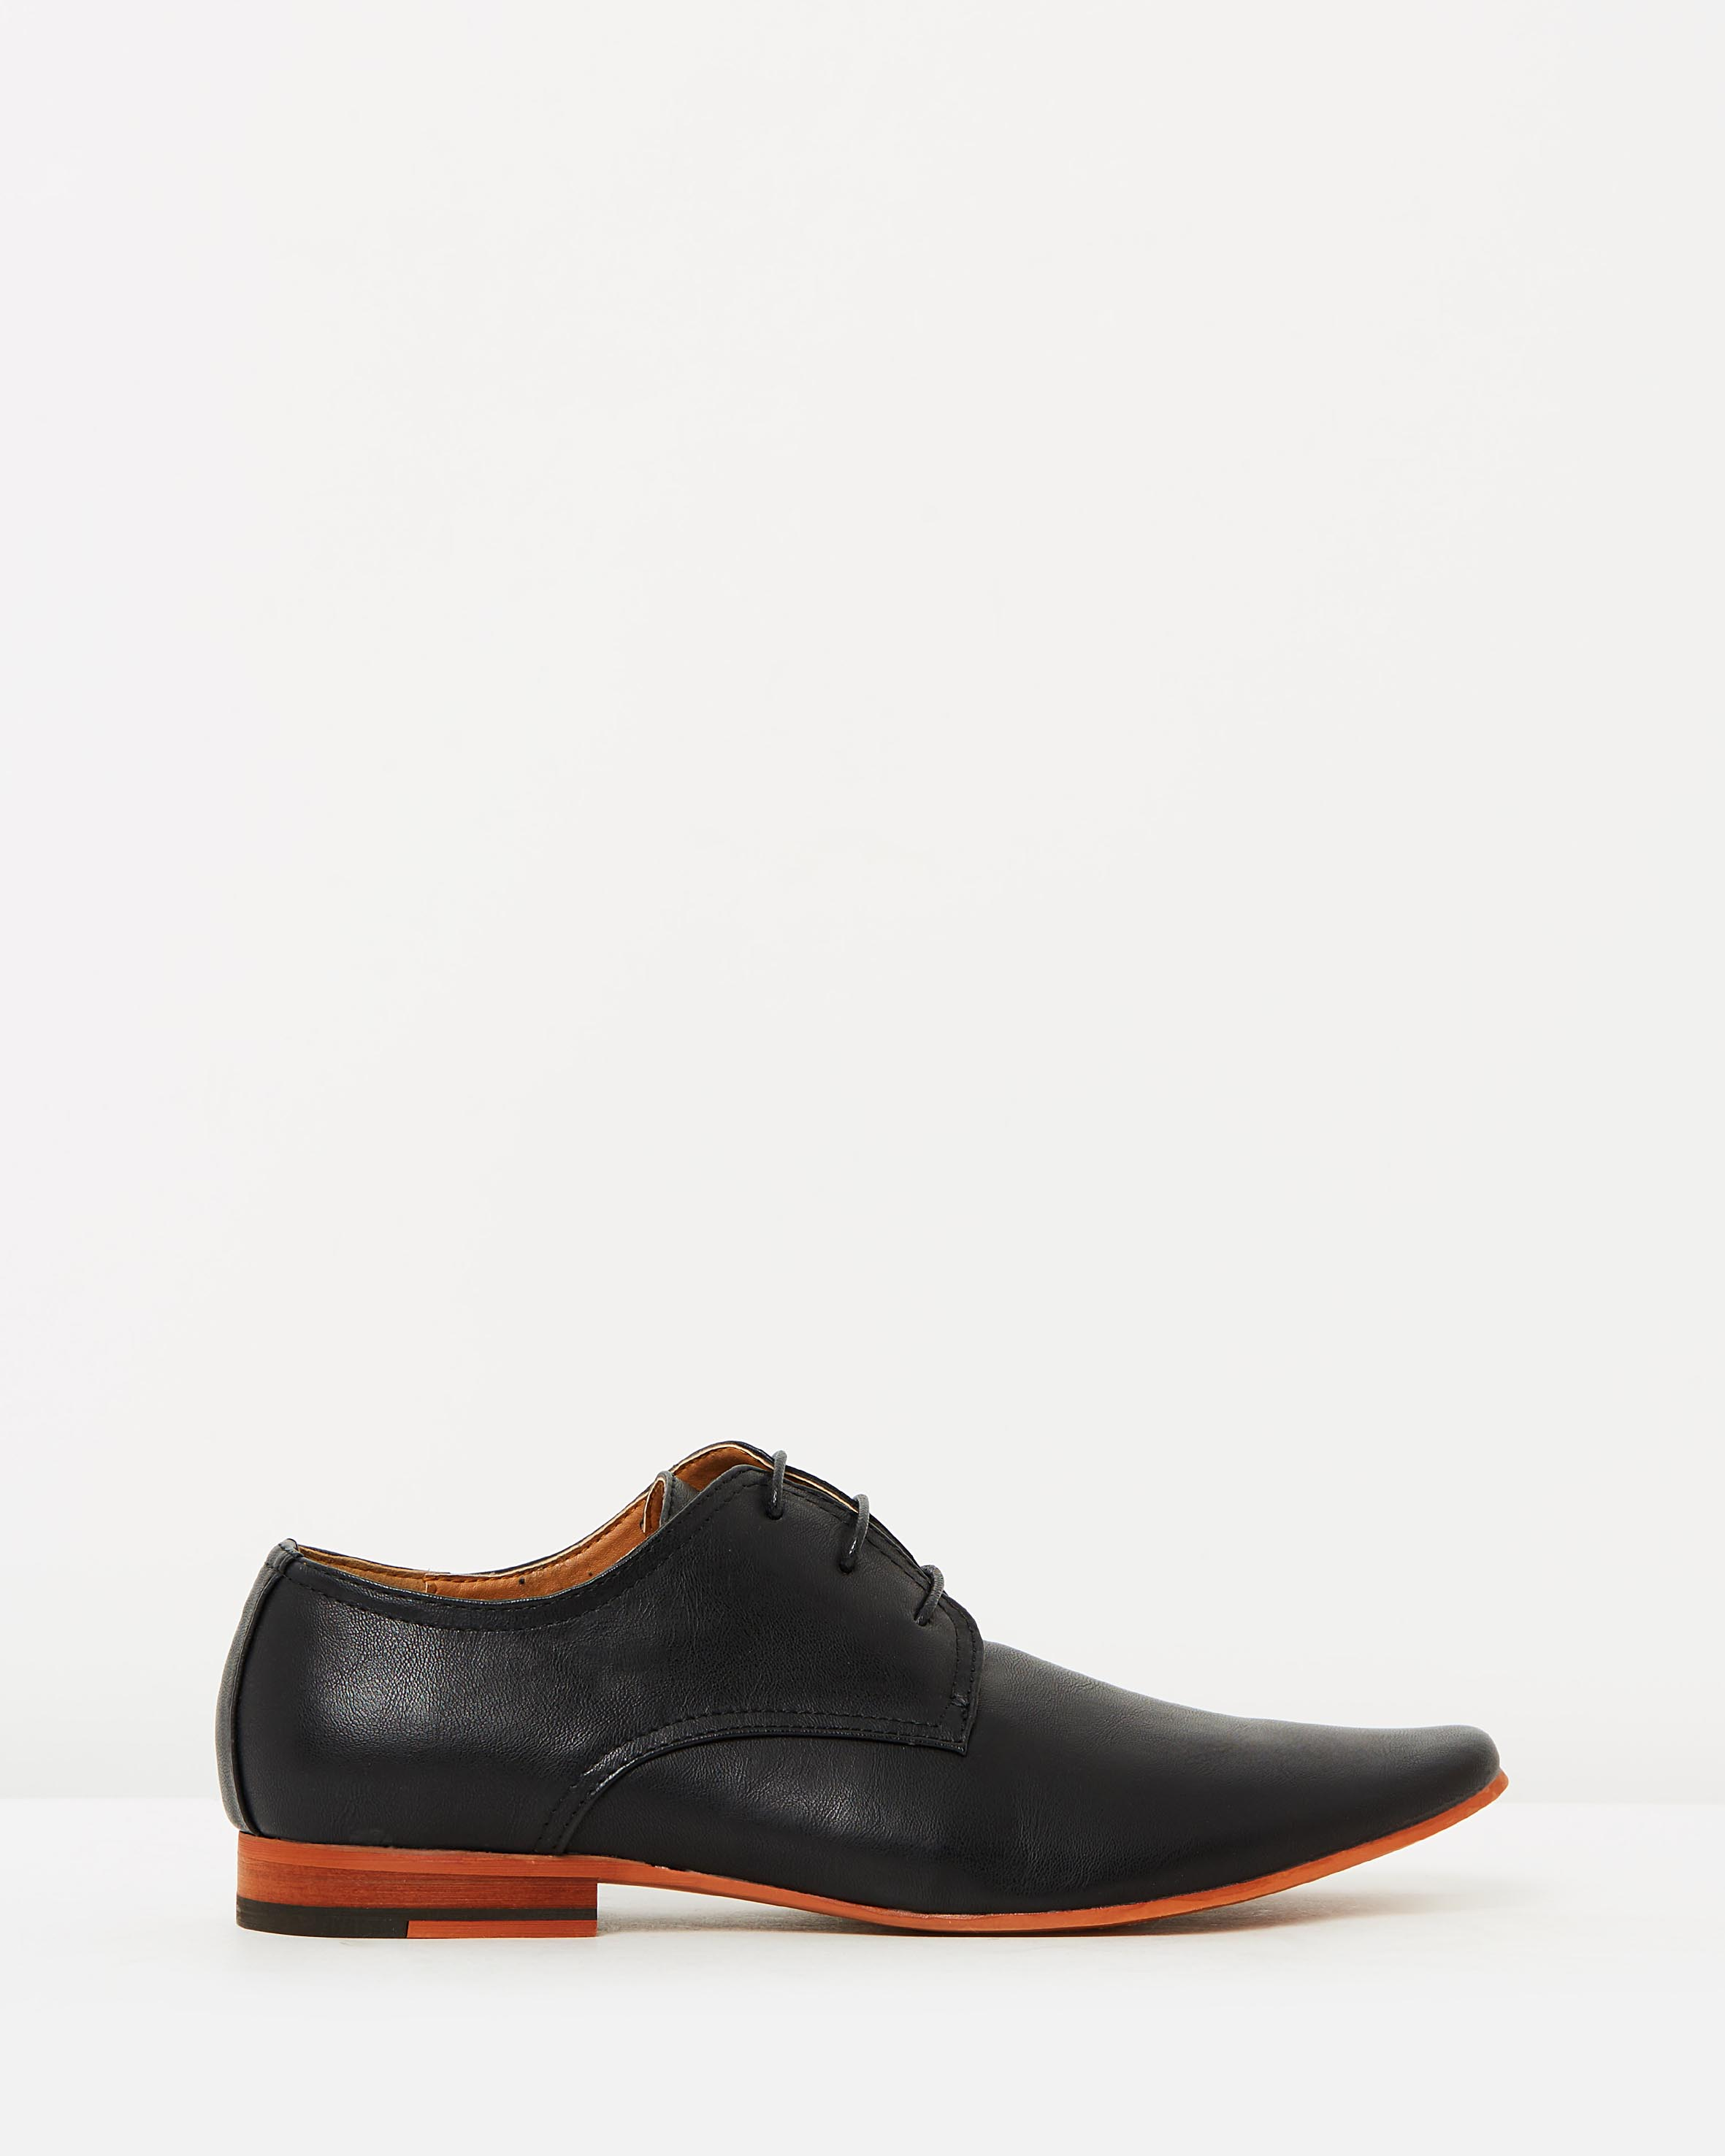 Description: Where to Buy Mens Oxford Dress Shoes Online? Where Can I Buy Dress... Added by: Kayla